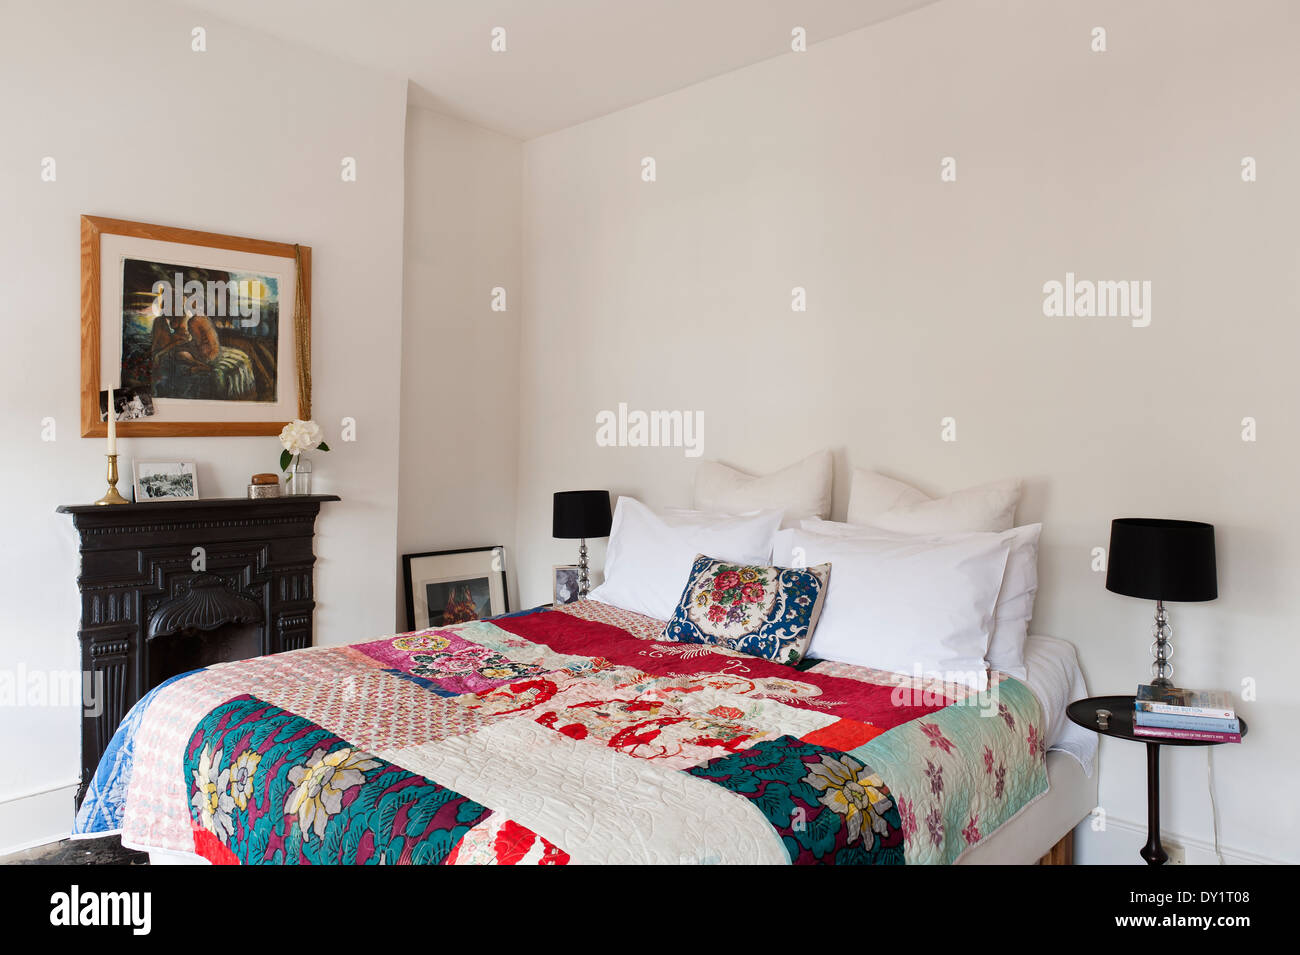 bedroom with patchwork quilt and fireplace - Stock Image